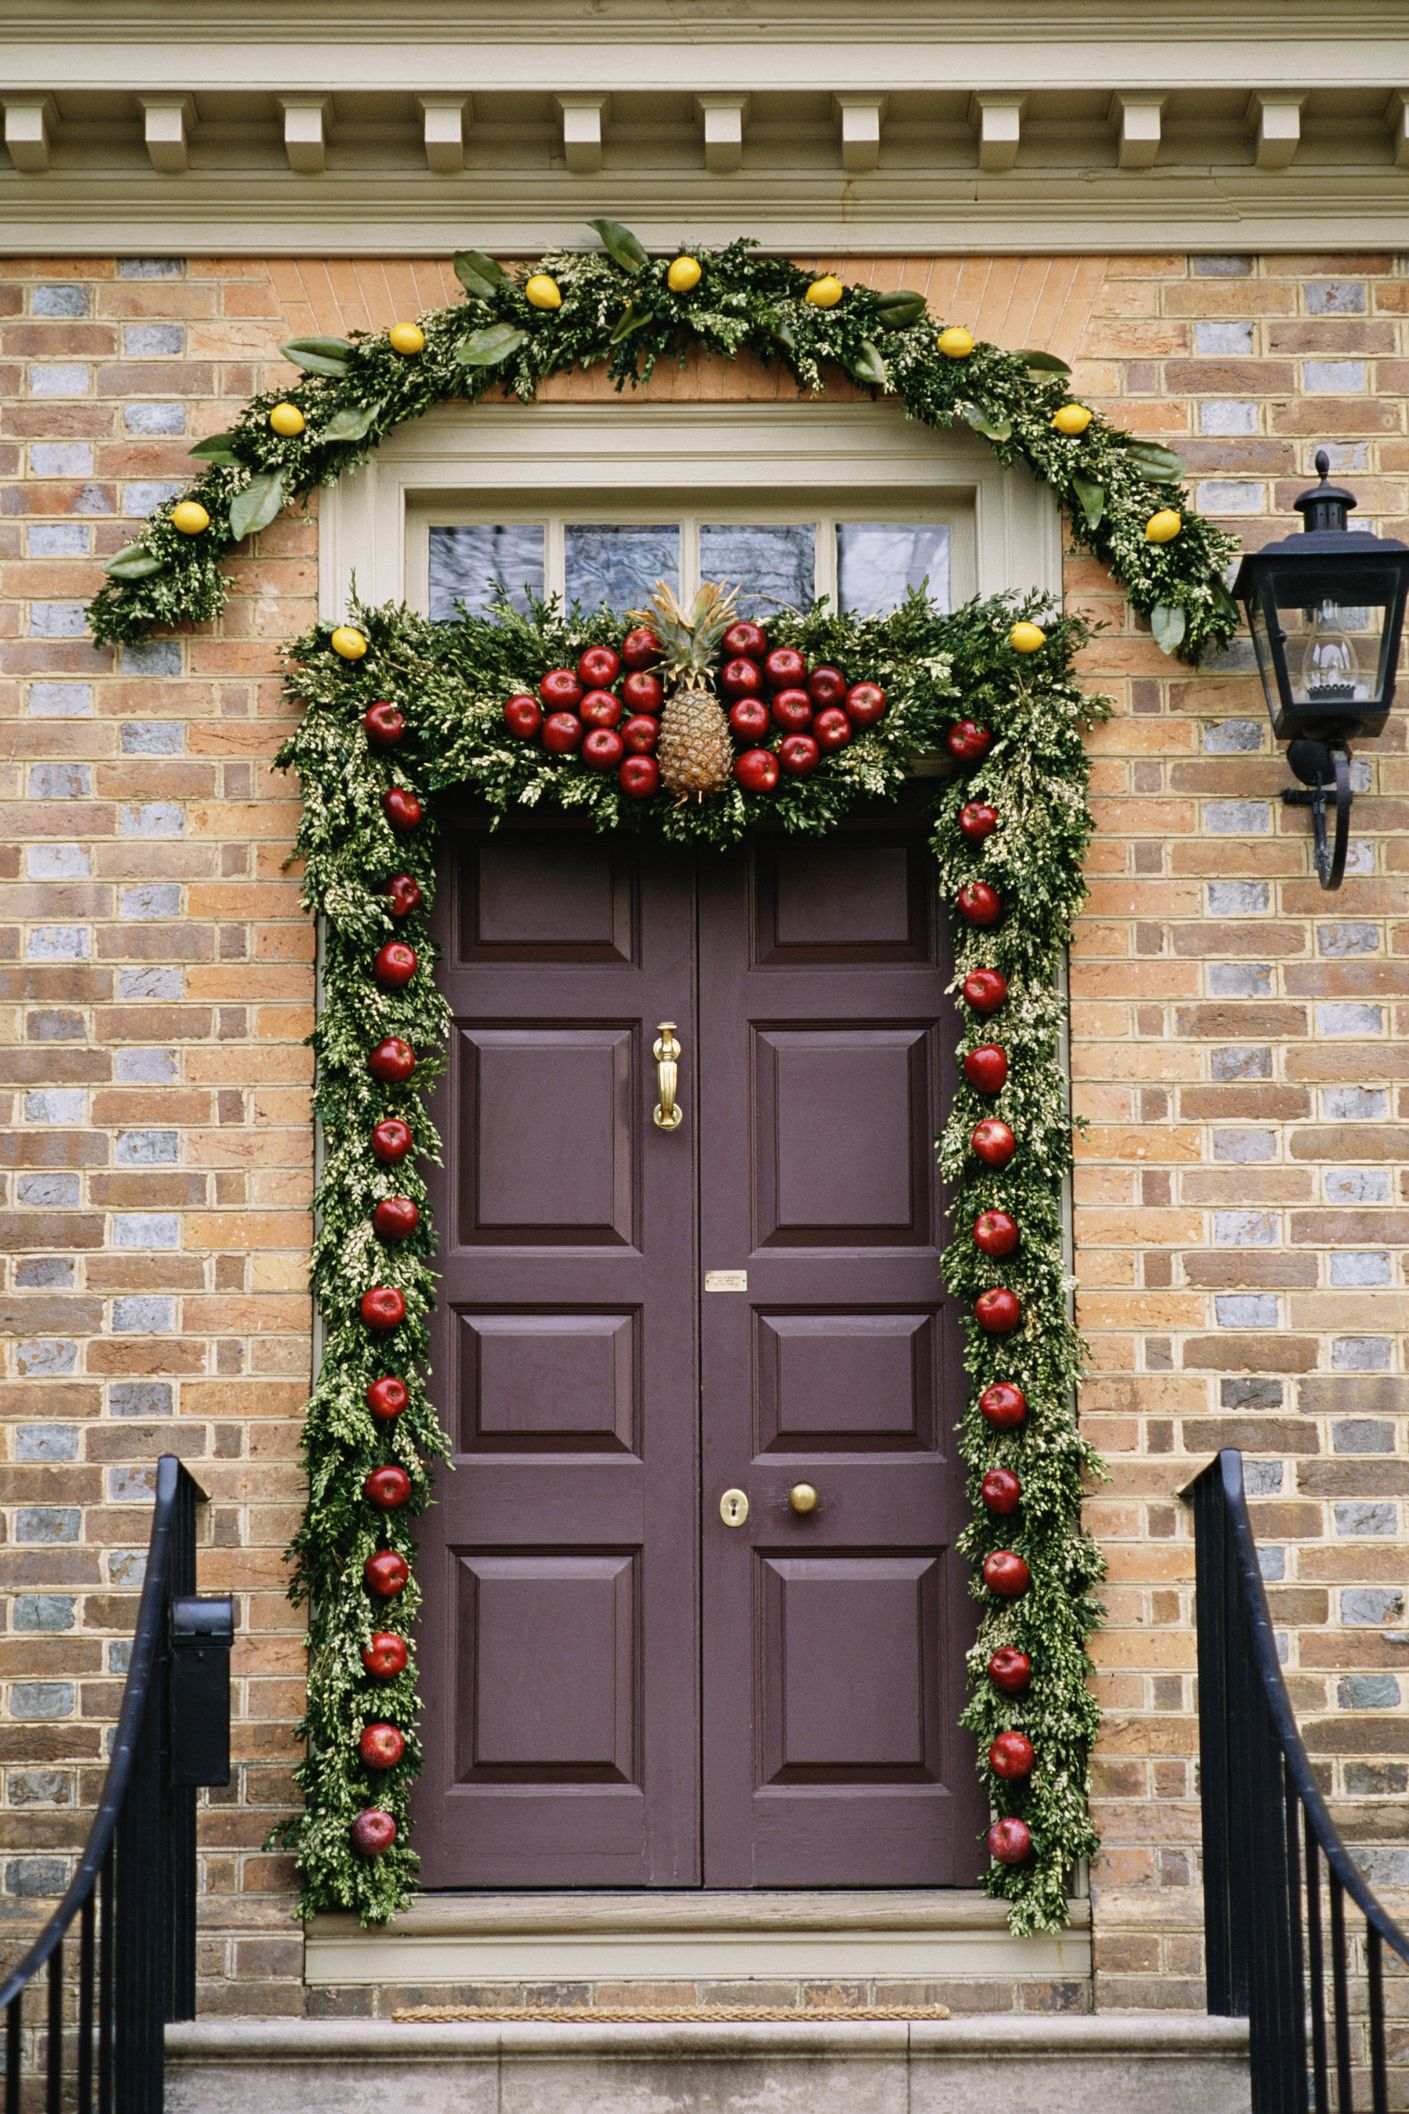 Door with holiday decorations